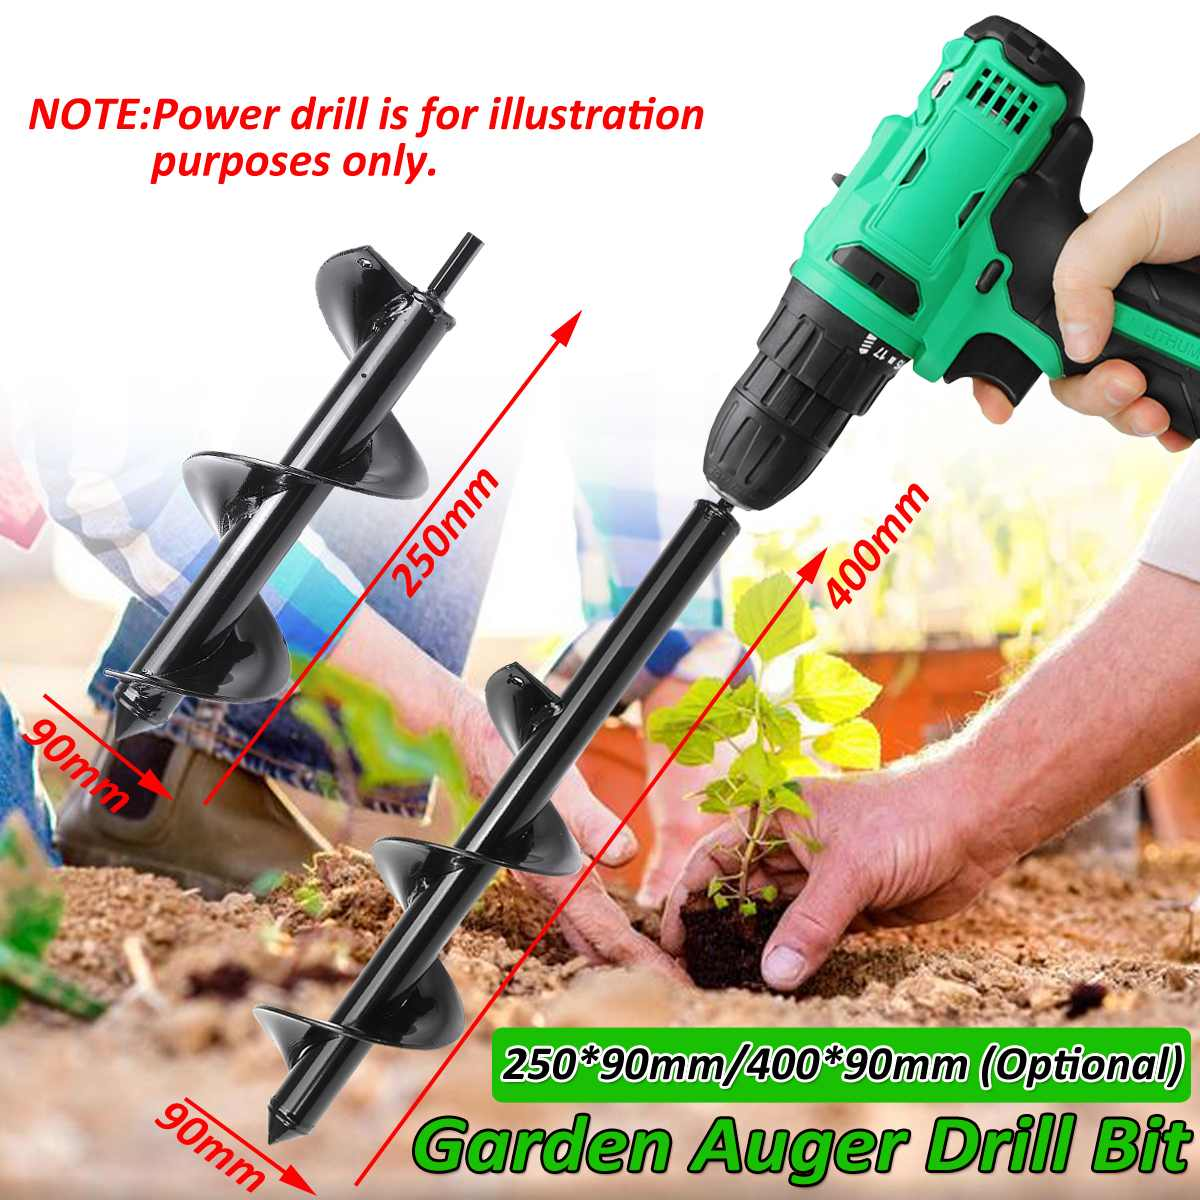 90mm-earth-auger-hole-digger-tool-garden-planting-machine-drill-bit-fence-borer-post-post-hole-digger-garden-auger-yard-tool